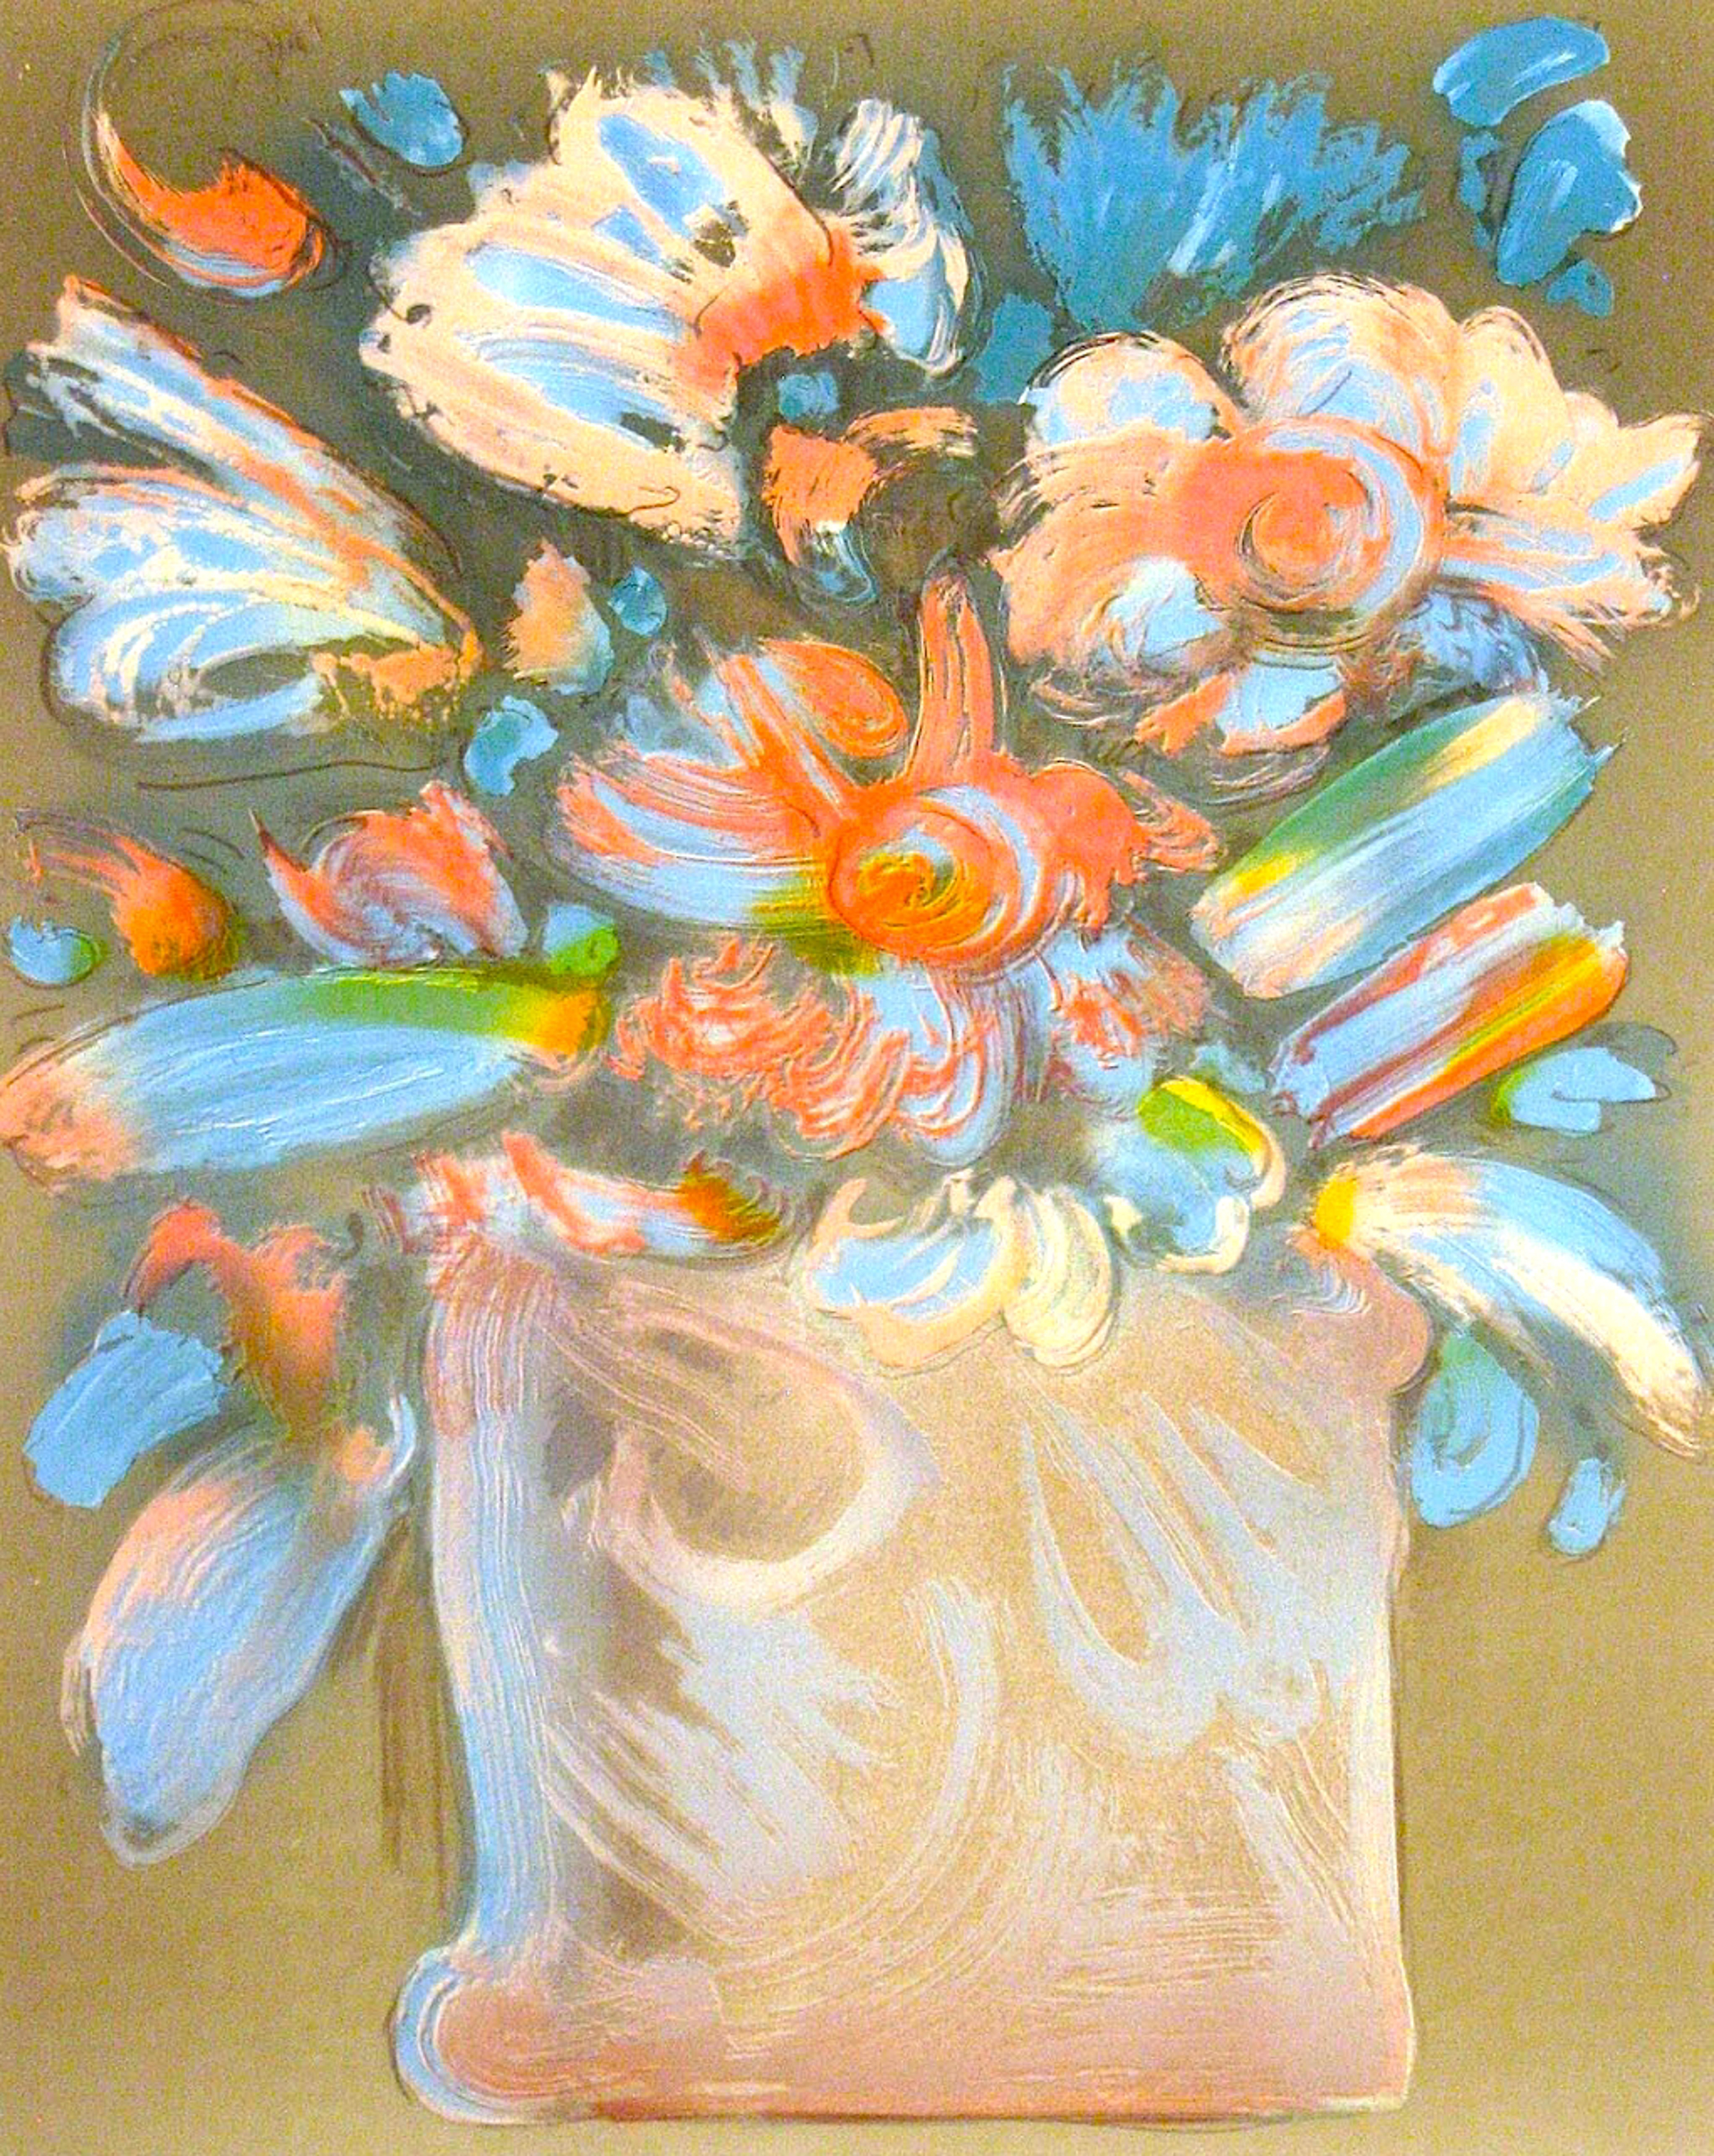 Untitled (Flowers In Vase) by Peter Max